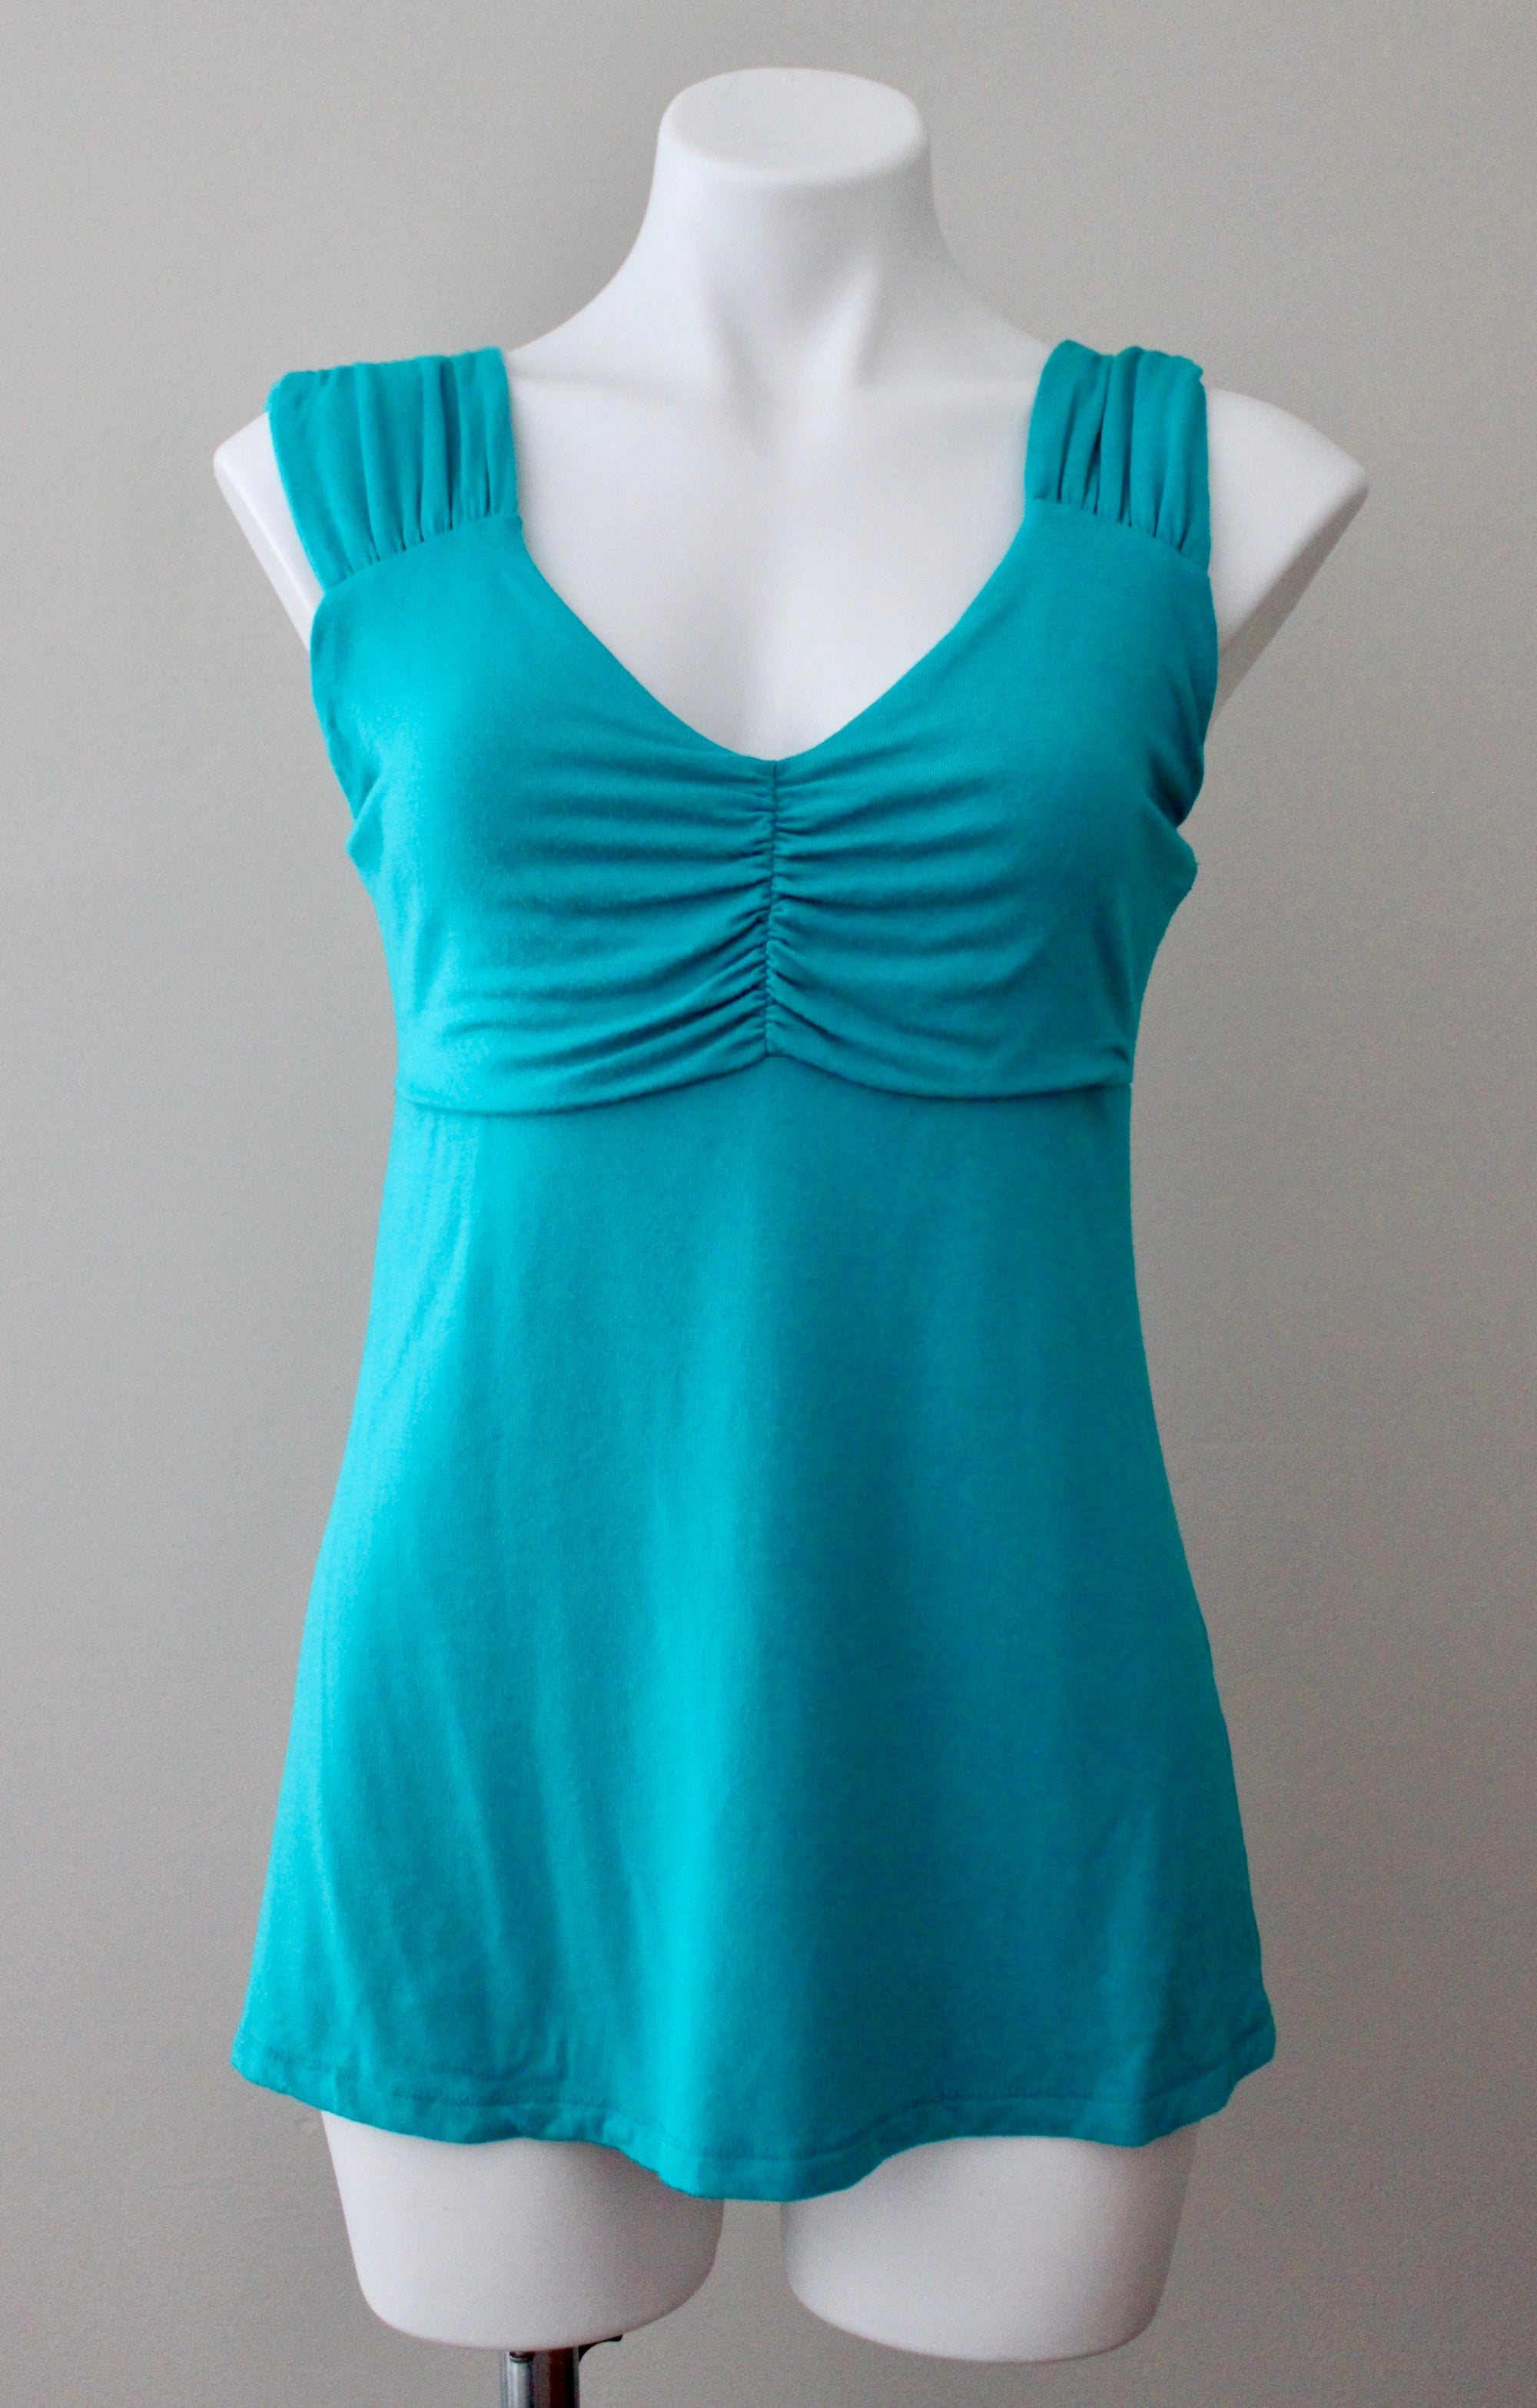 BOSTON PROPER Light Summer teal top